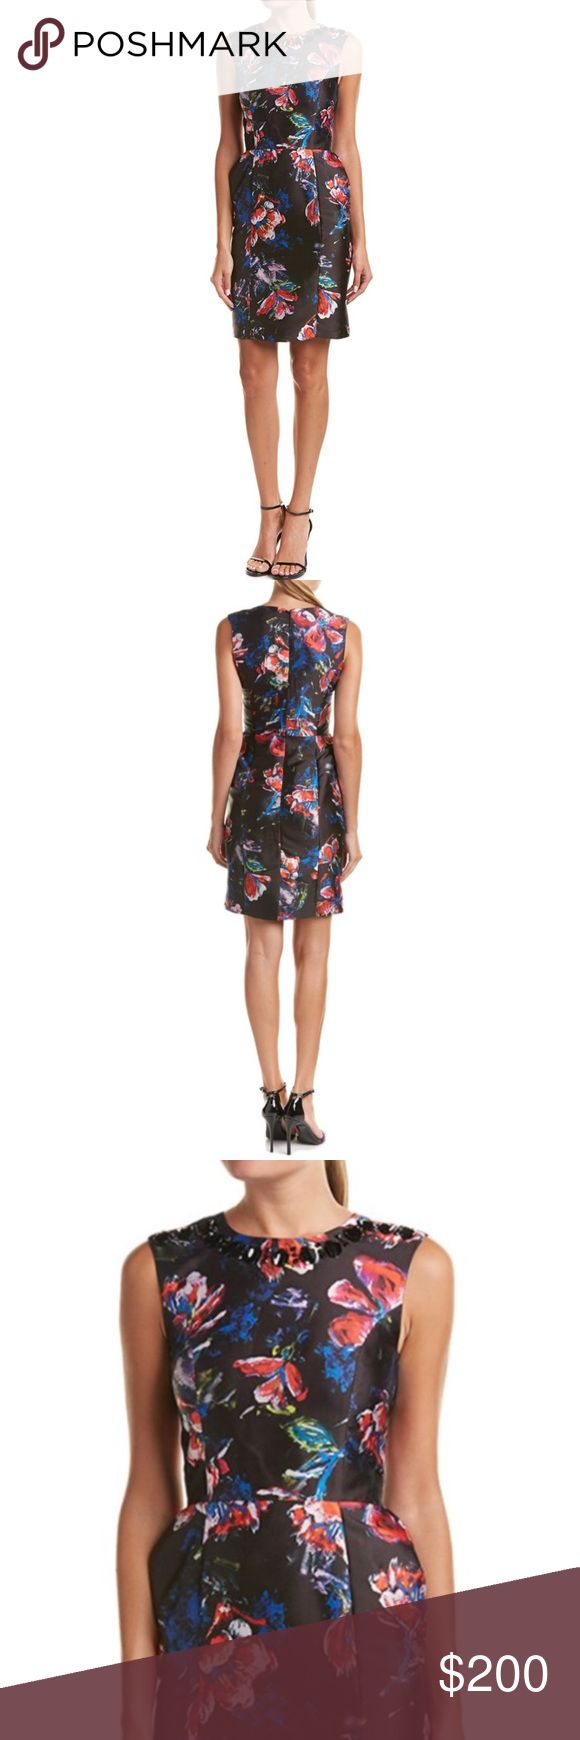 Sachin & Babi Noir Embellished Floral Dress Structured cocktail dress in a pretty floral print with an embellished neckline, tailored bodice, and inverted pleats. Back zipper and hook-eye closure. Sachin + Babi Dresses